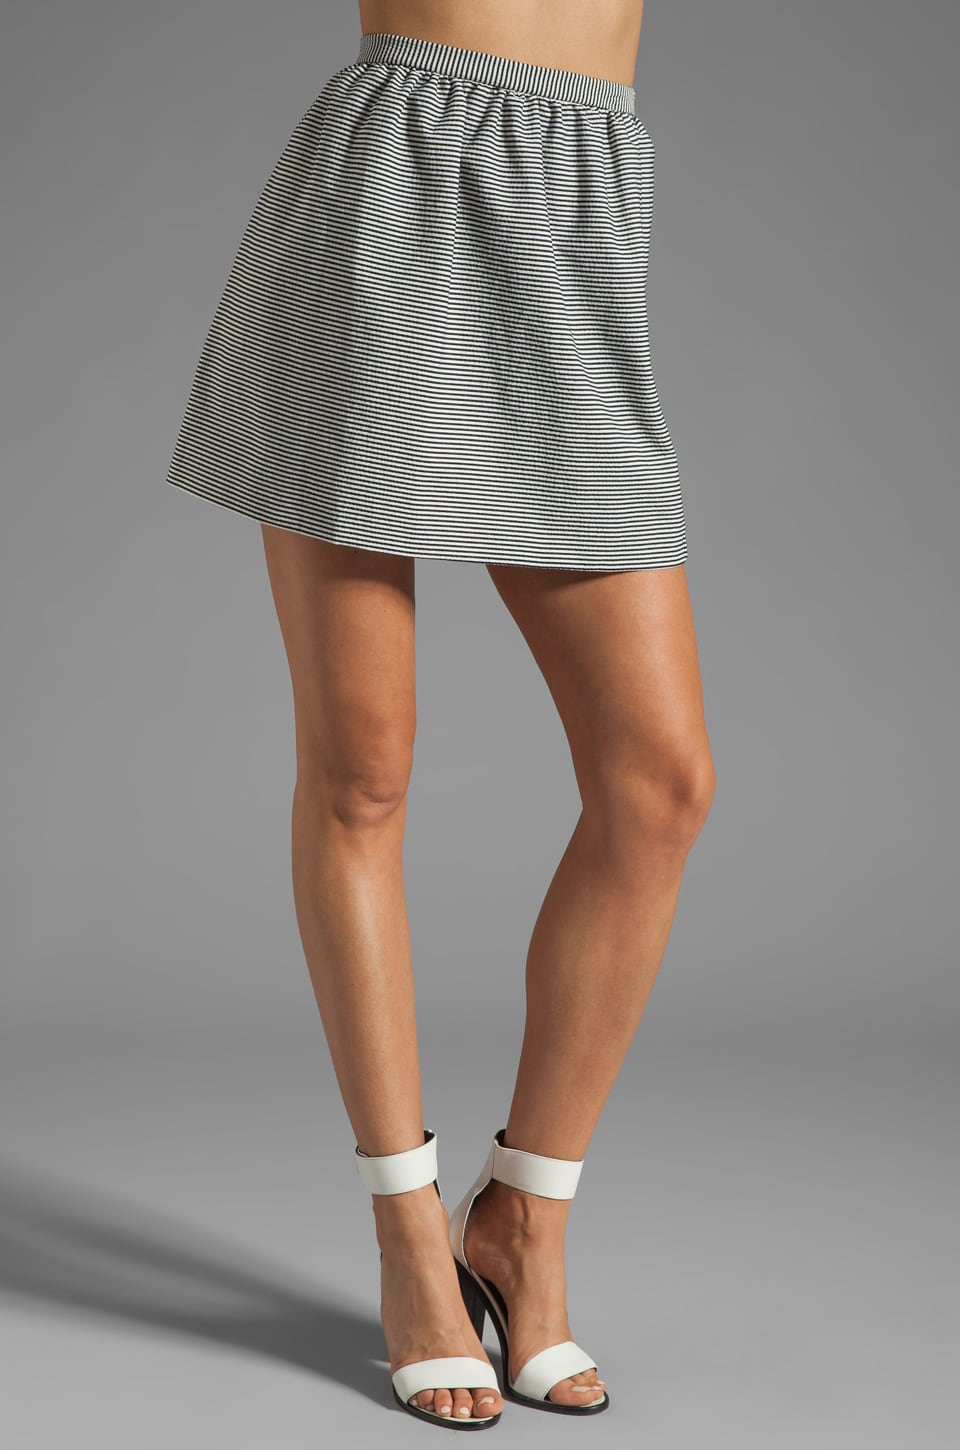 Alice + Olivia Francys Short Skirt in Black/White